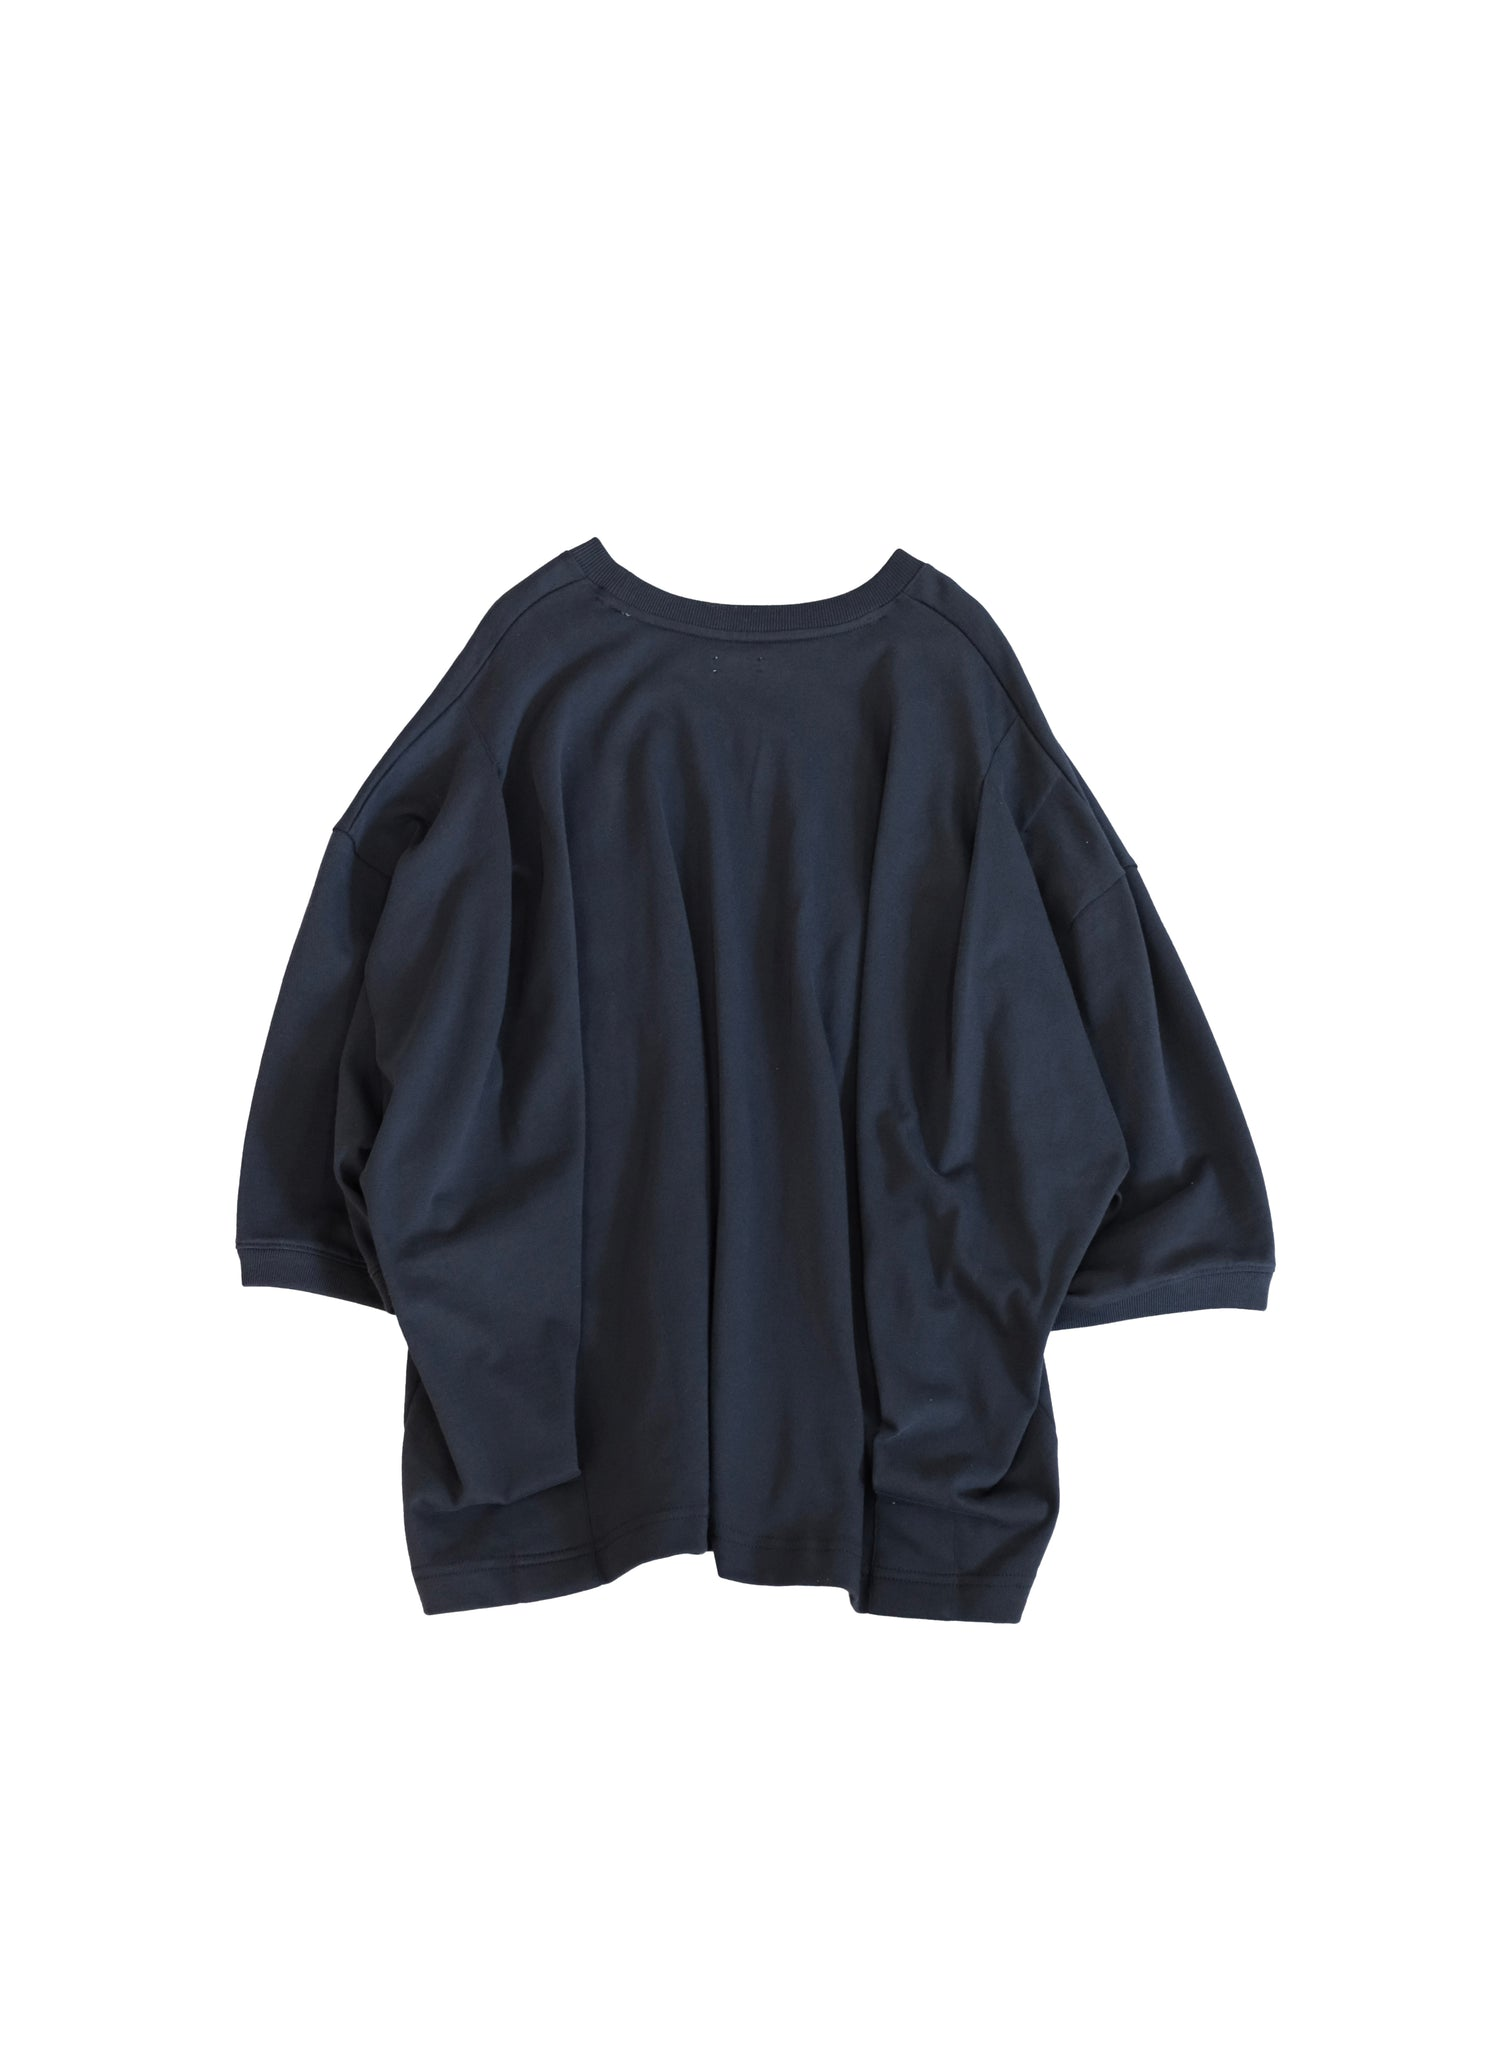 WILLY CHAVARRIA / ウィリーチャバリア BEEFCAKE BUFFALO T(WITHOUT P) 【WILLY CHAVARRIA】定番であり、間違いないBUFFALO TEE。Peruvian Tanguis cotton jerseyを使用。バック画像。